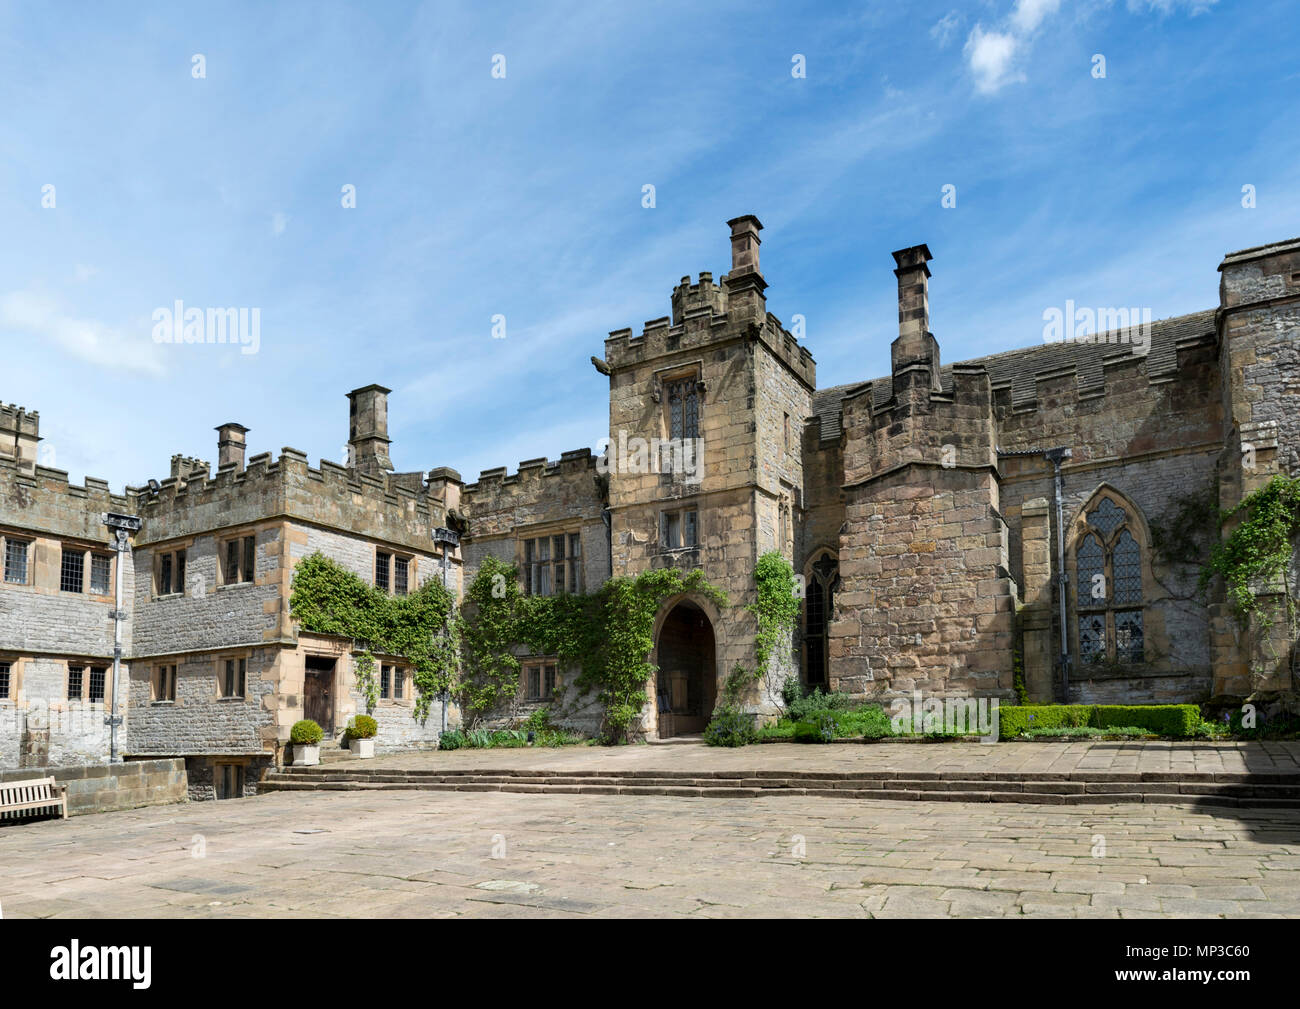 Lower Courtyard at Haddon Hall, near Bakewell, Derbyshire, England, UK - Stock Image